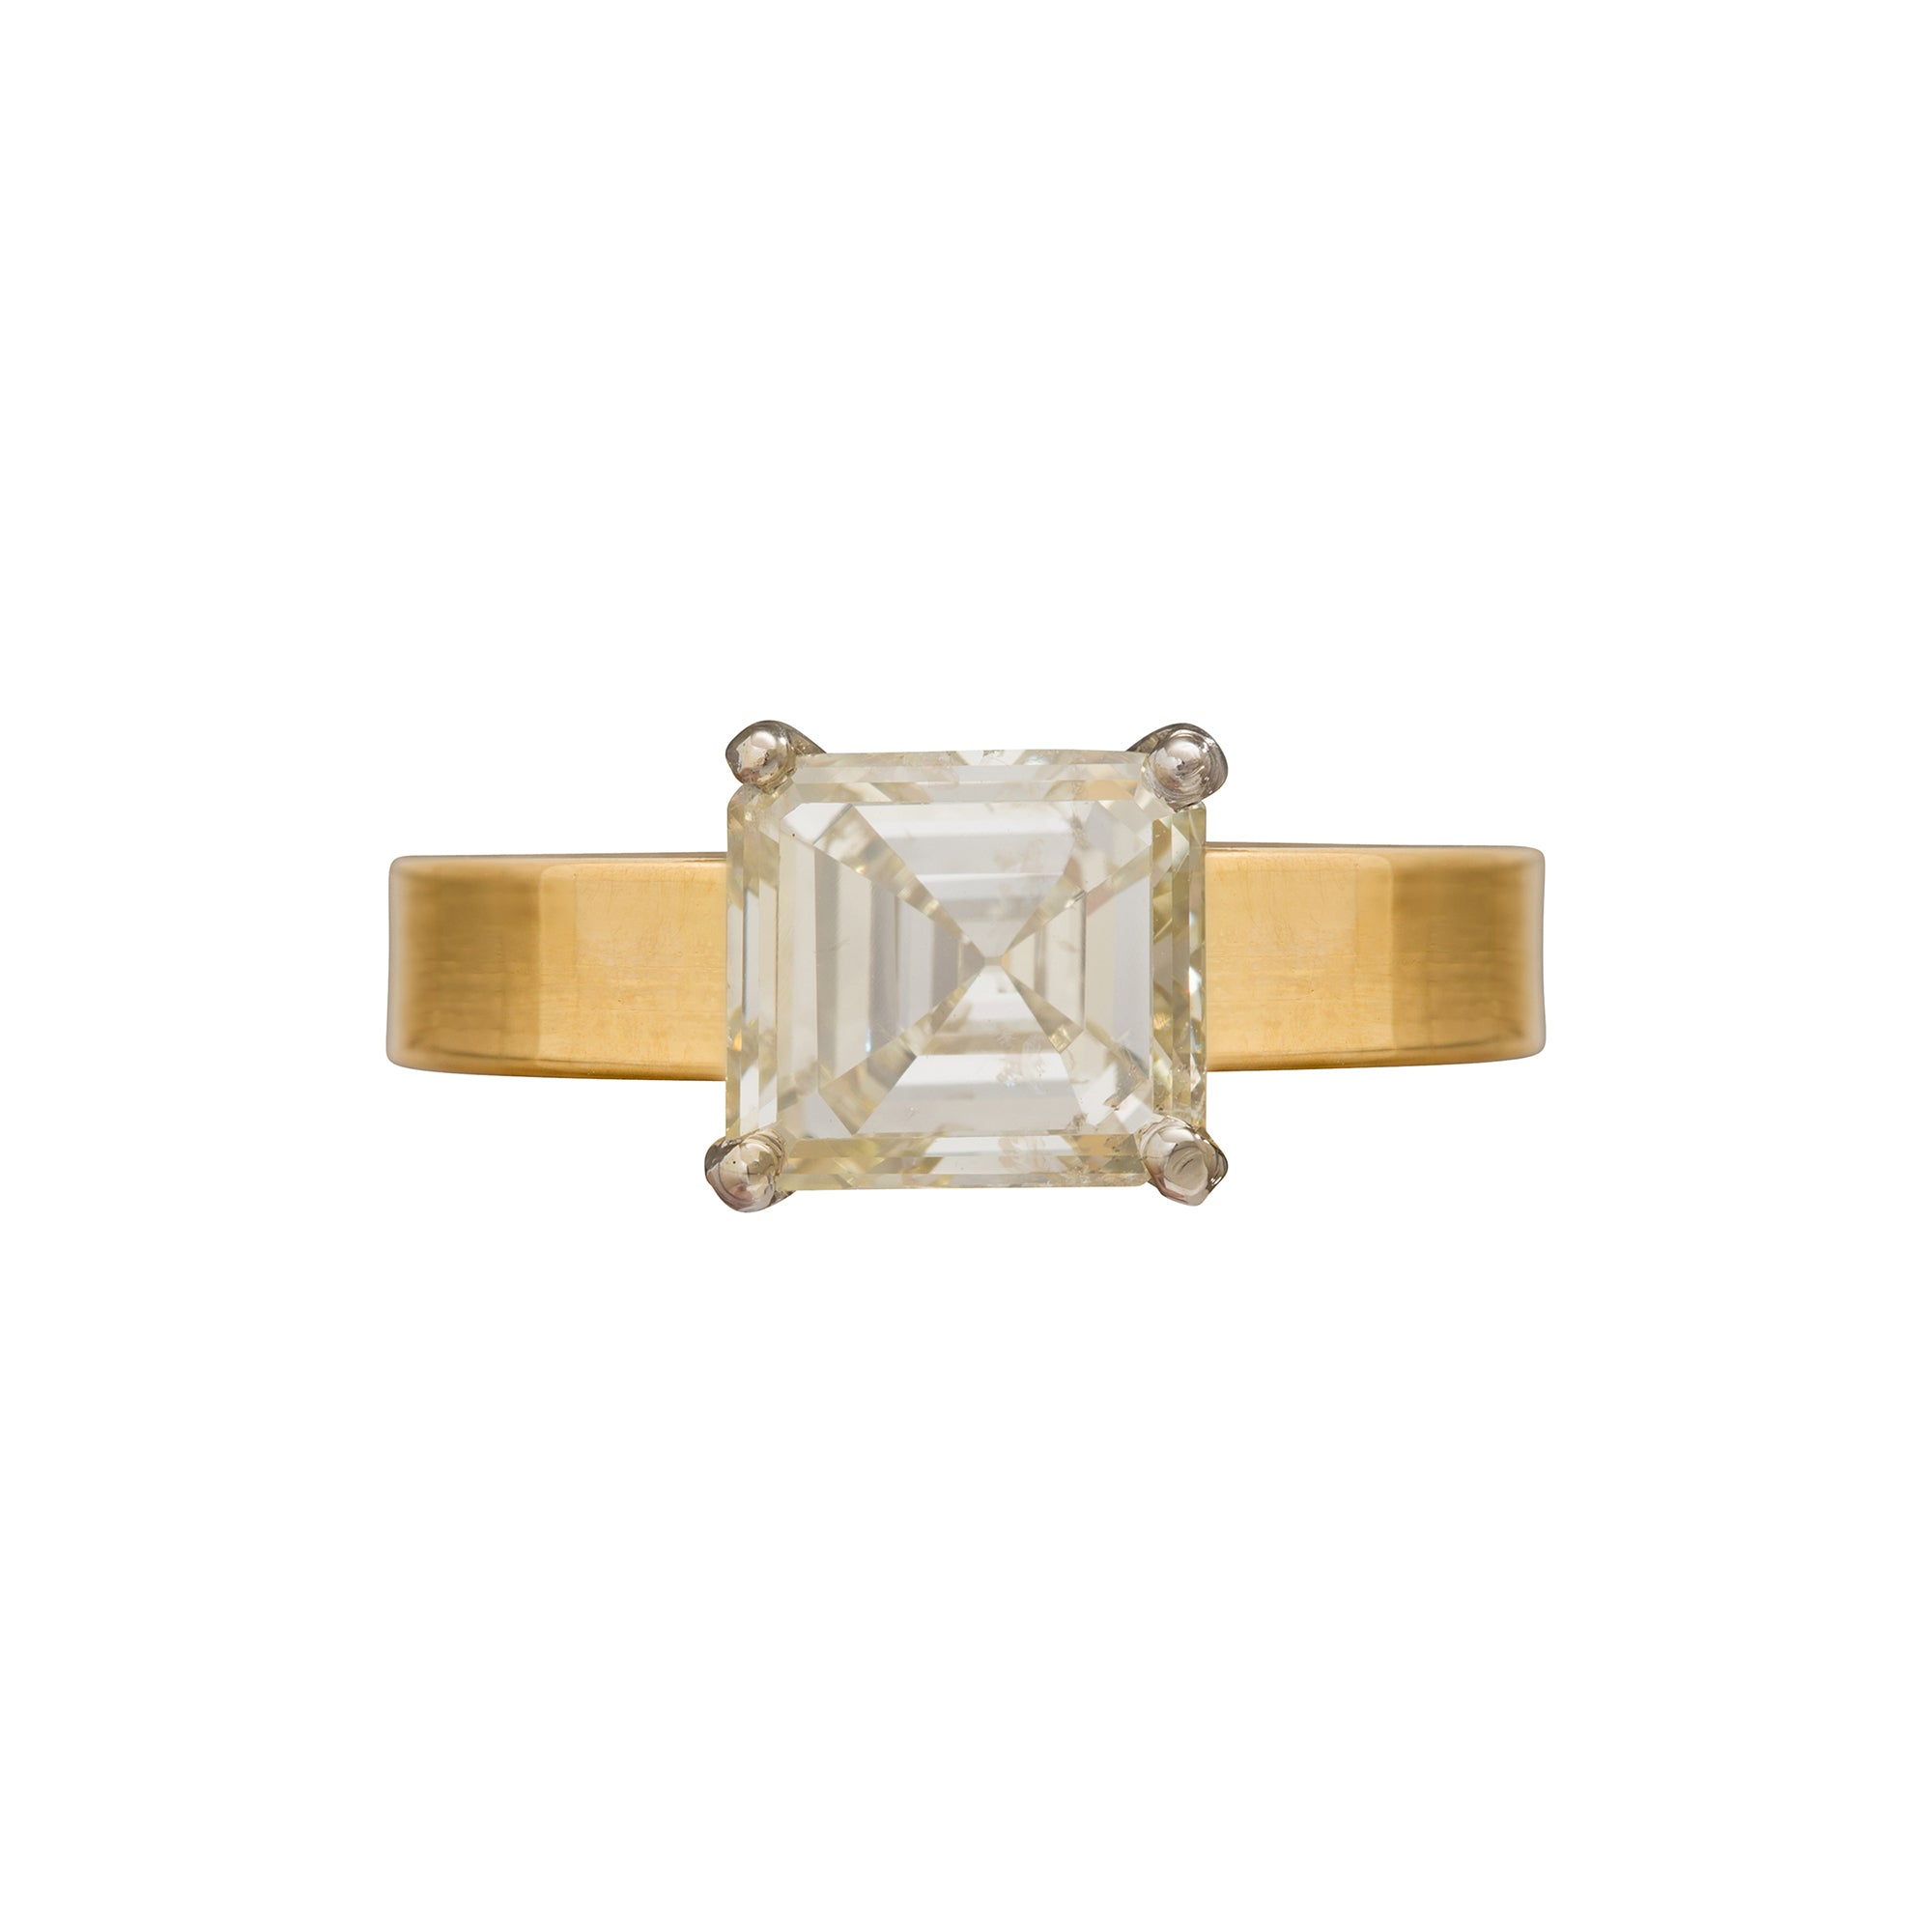 Asher Cut Diamond Ring by Renee Lewis for Broken English Jewelry